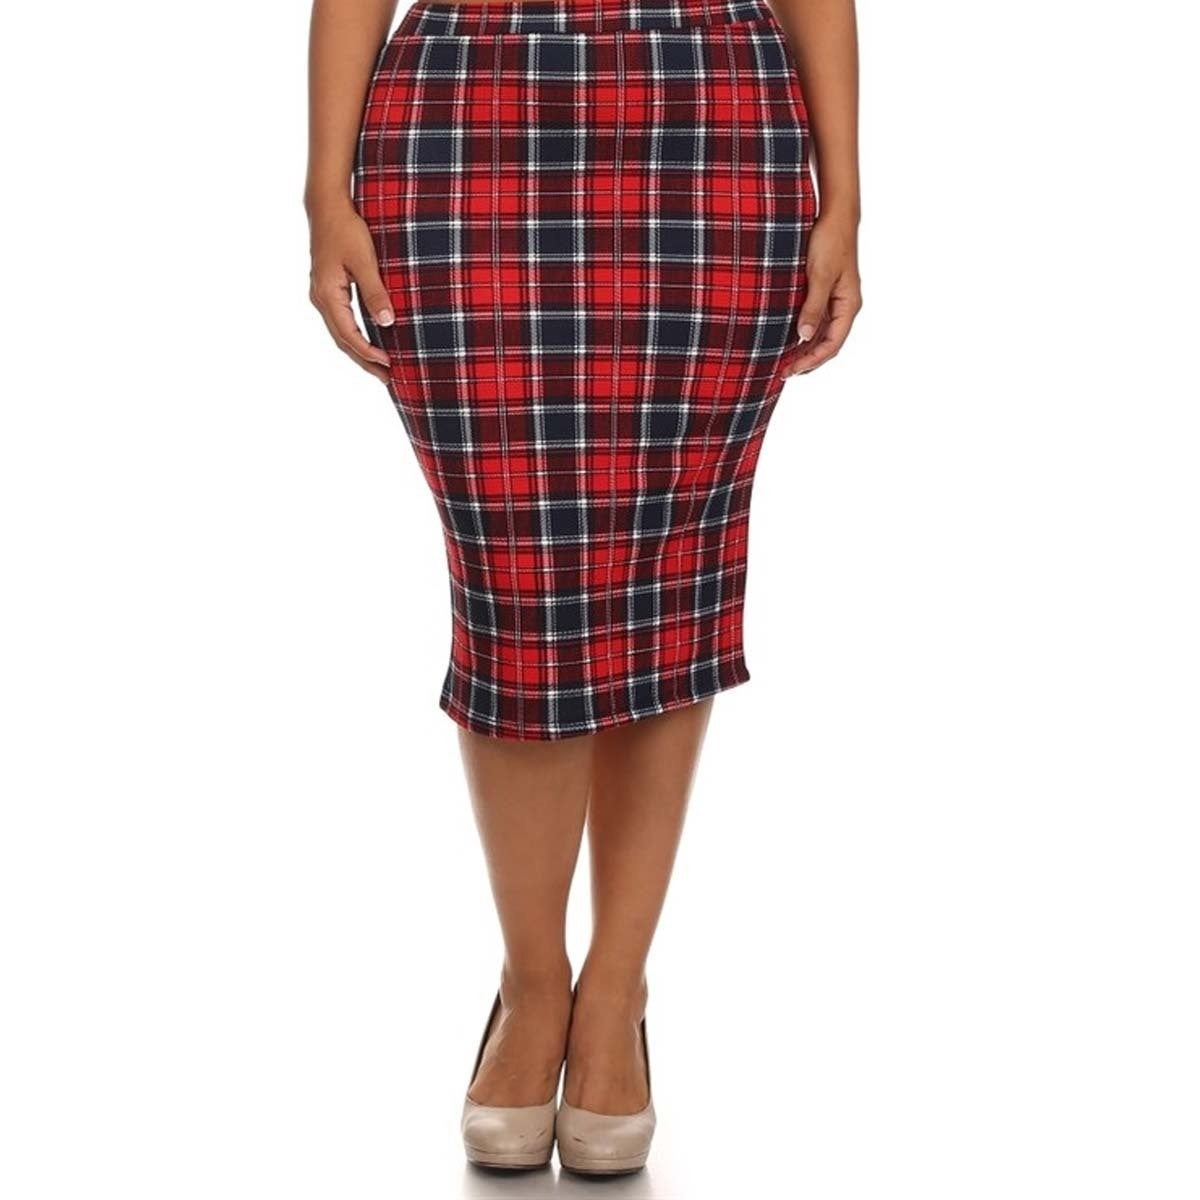 f1c95575a7eb Shop MOA Collection Women's Plus Size High Waisted Plaid Print Skirt - On  Sale - Free Shipping On Orders Over $45 - Overstock - 10664345